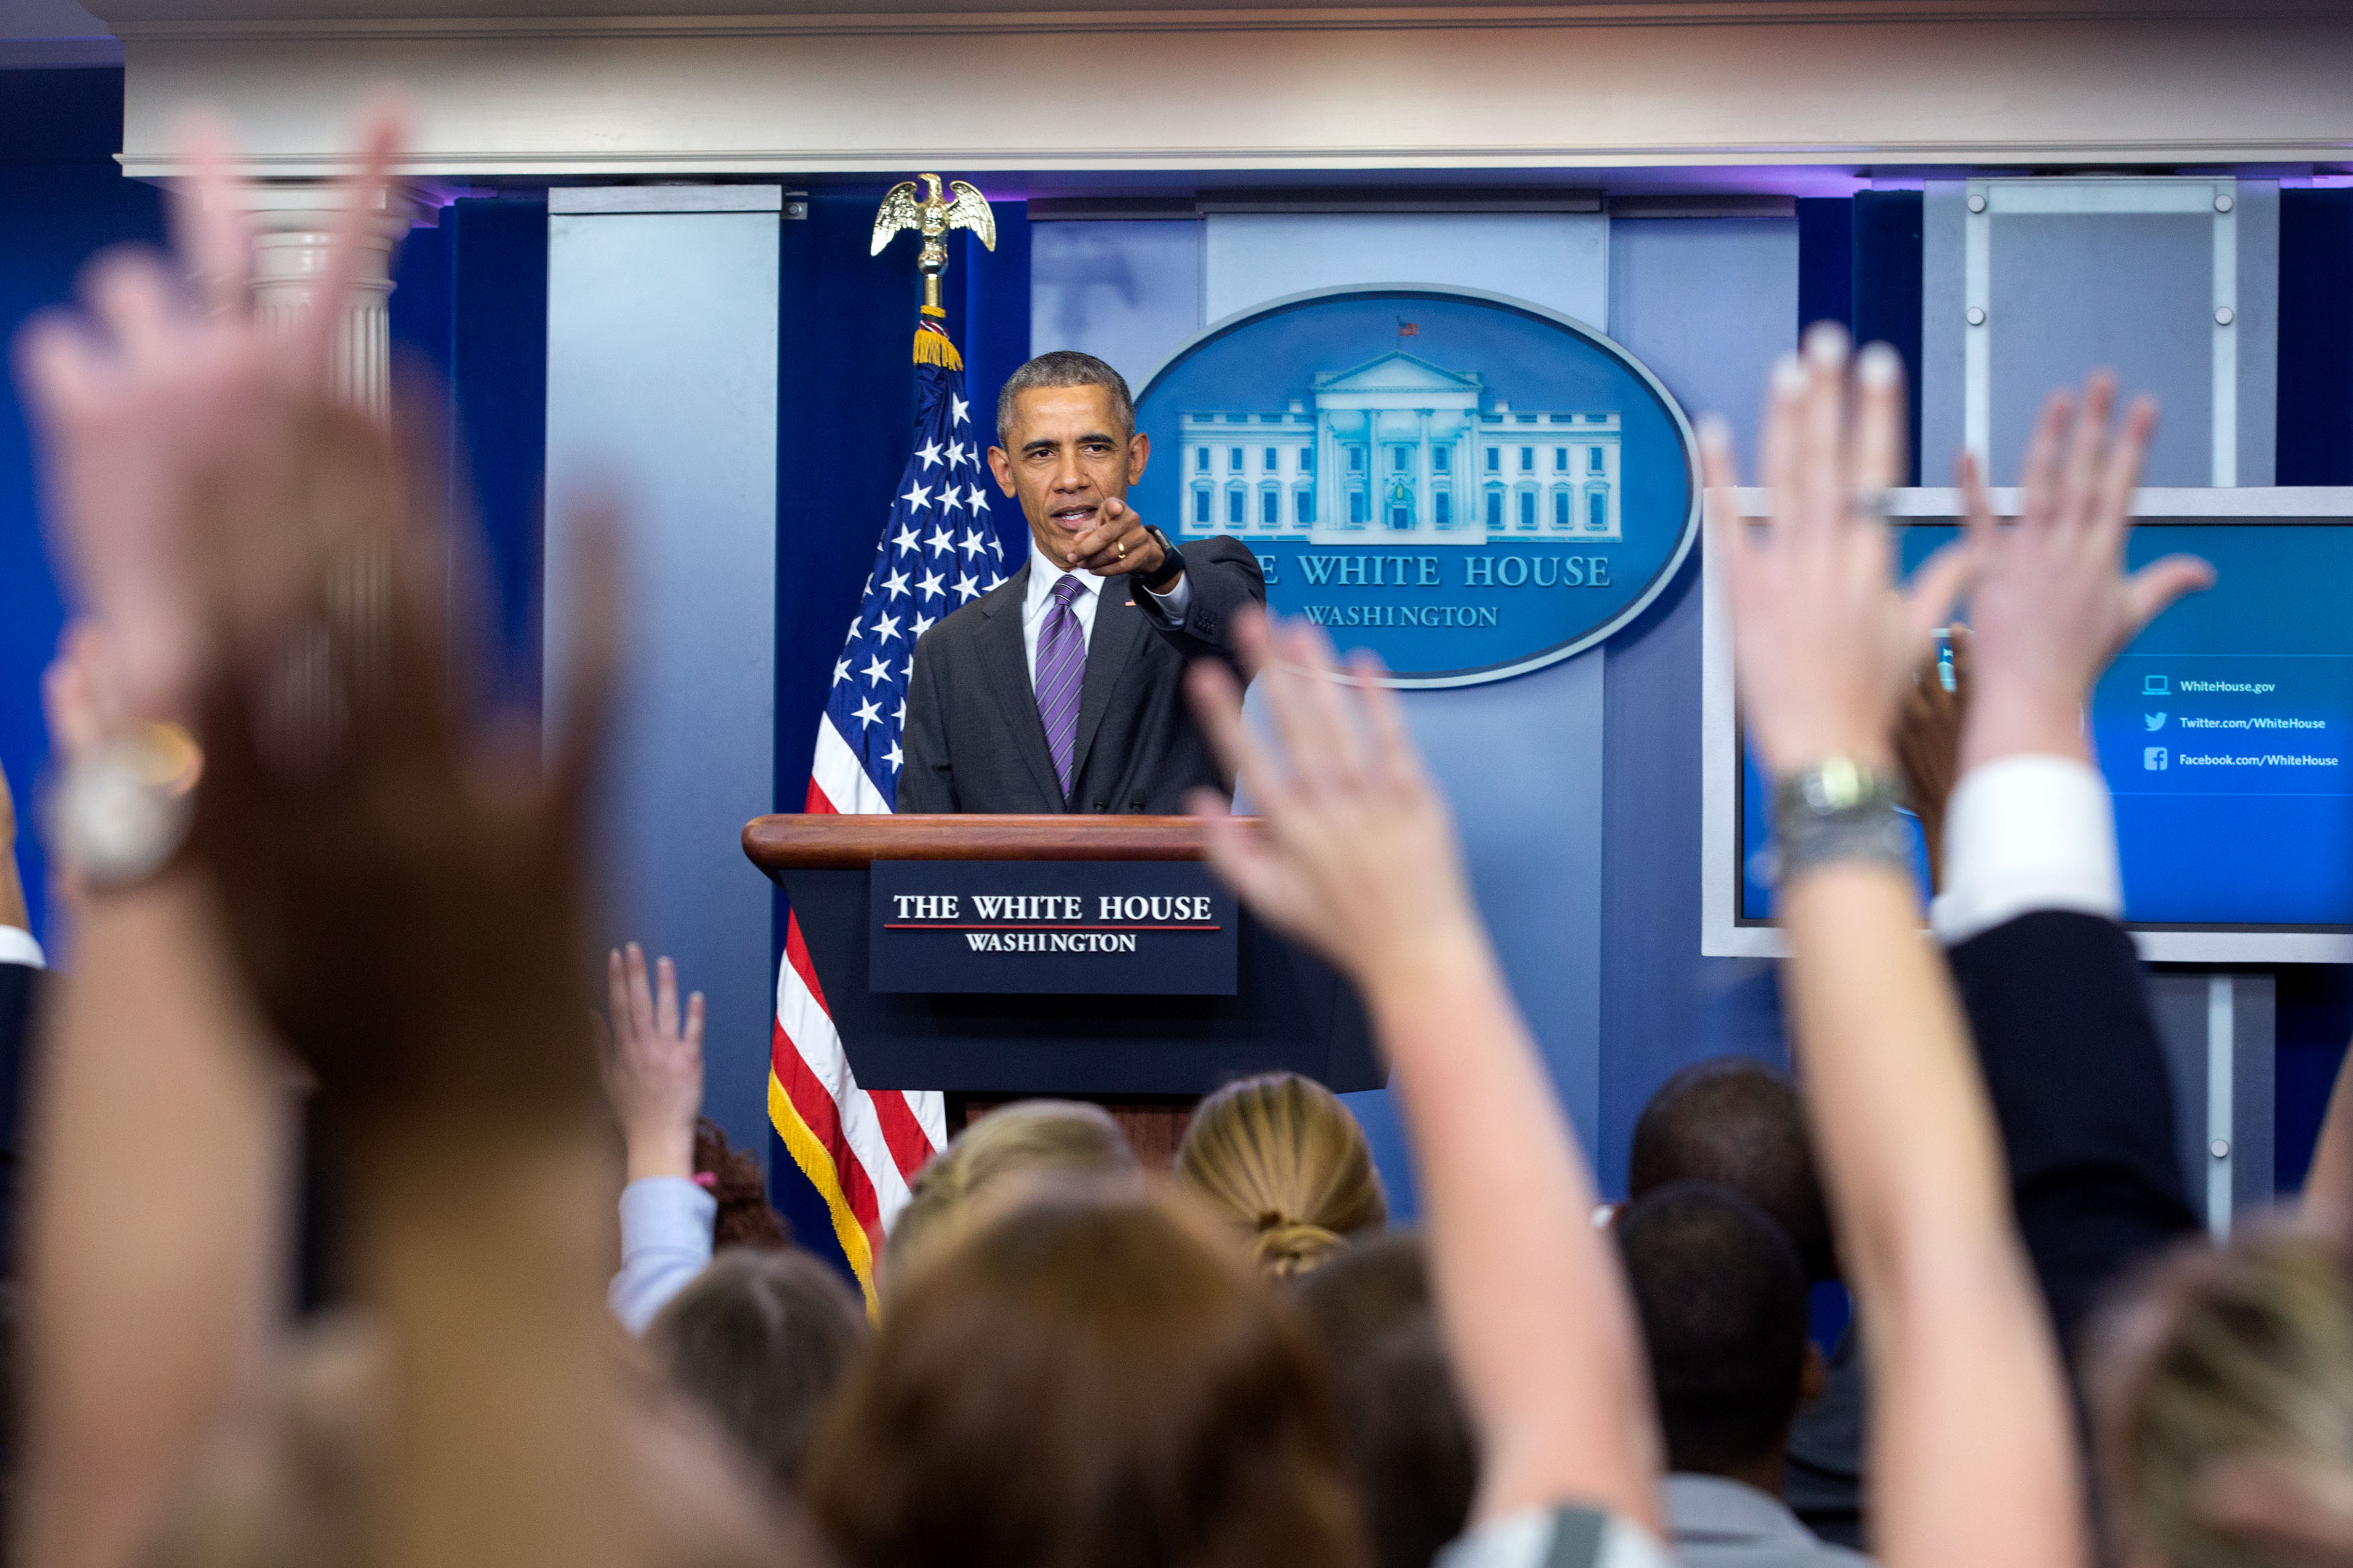 President Barack Obama takes questions from student reporters during College Reporter Day in the James S. Brady Press Briefing Room of the White House, April 28, 2016. (Official White House Photo by Amanda Lucidon)